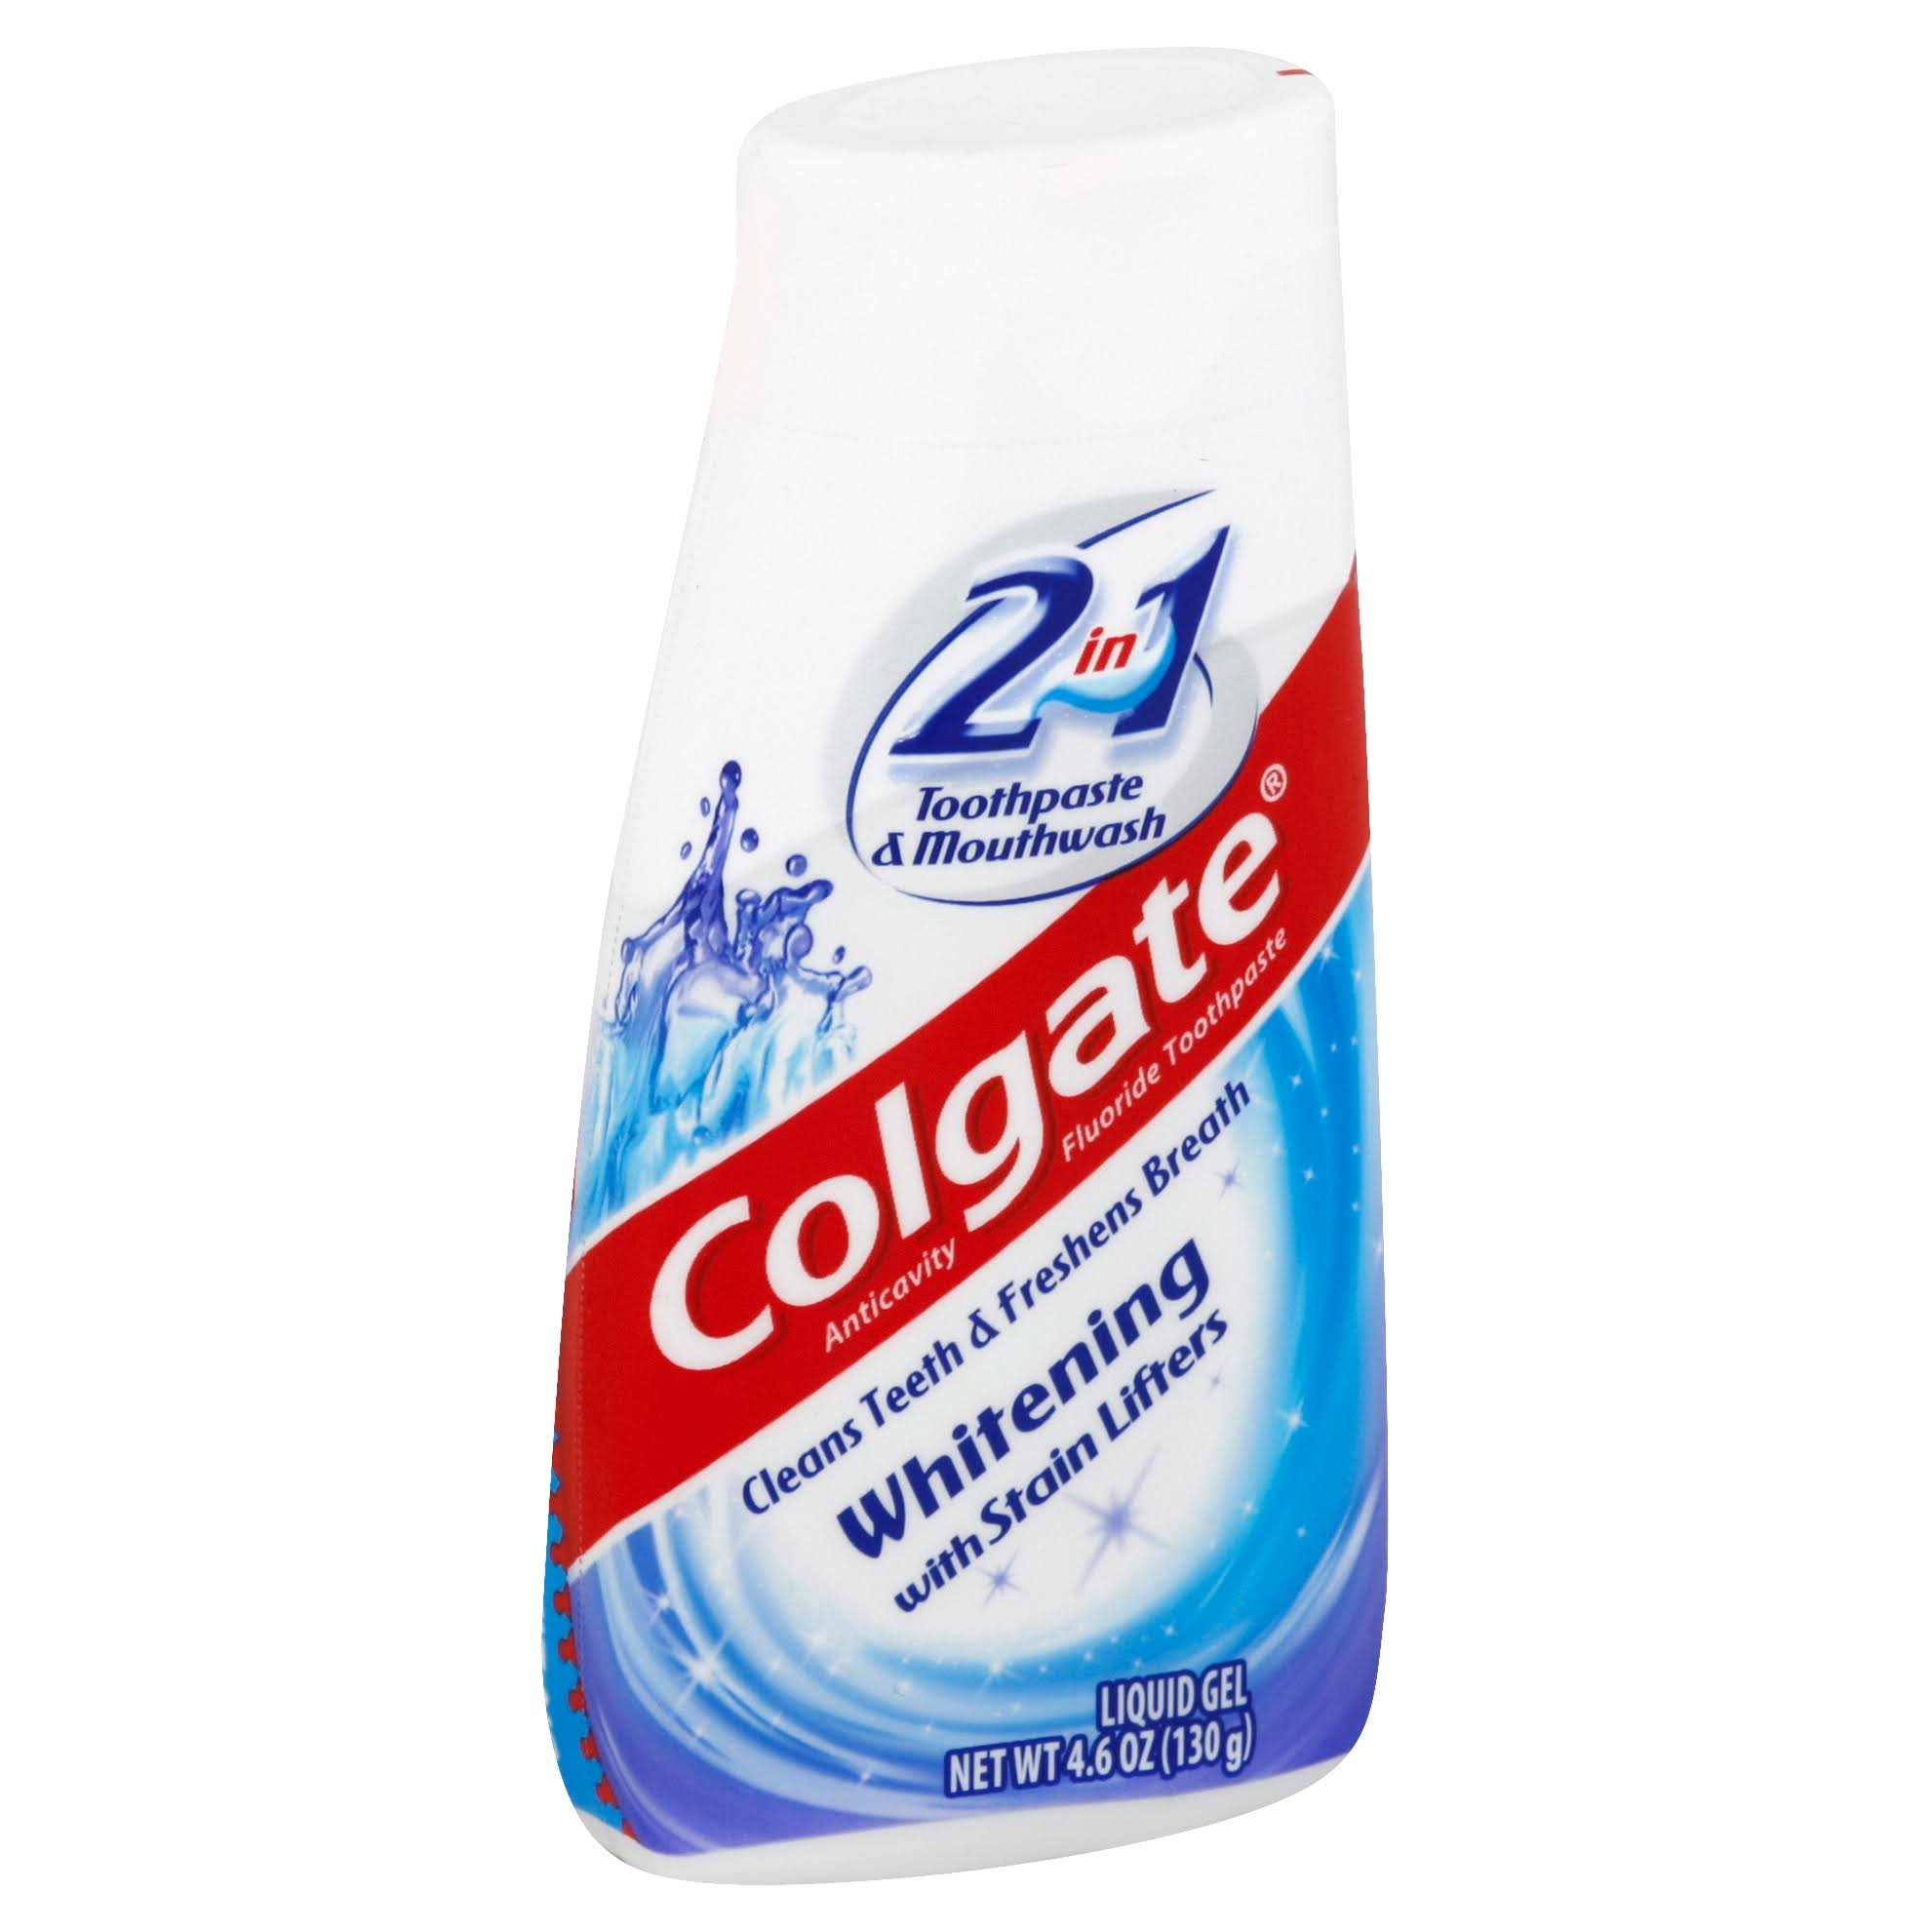 Colgate 2 in 1 Toothpaste and Mouthwash Liquid Gel - 4.6oz